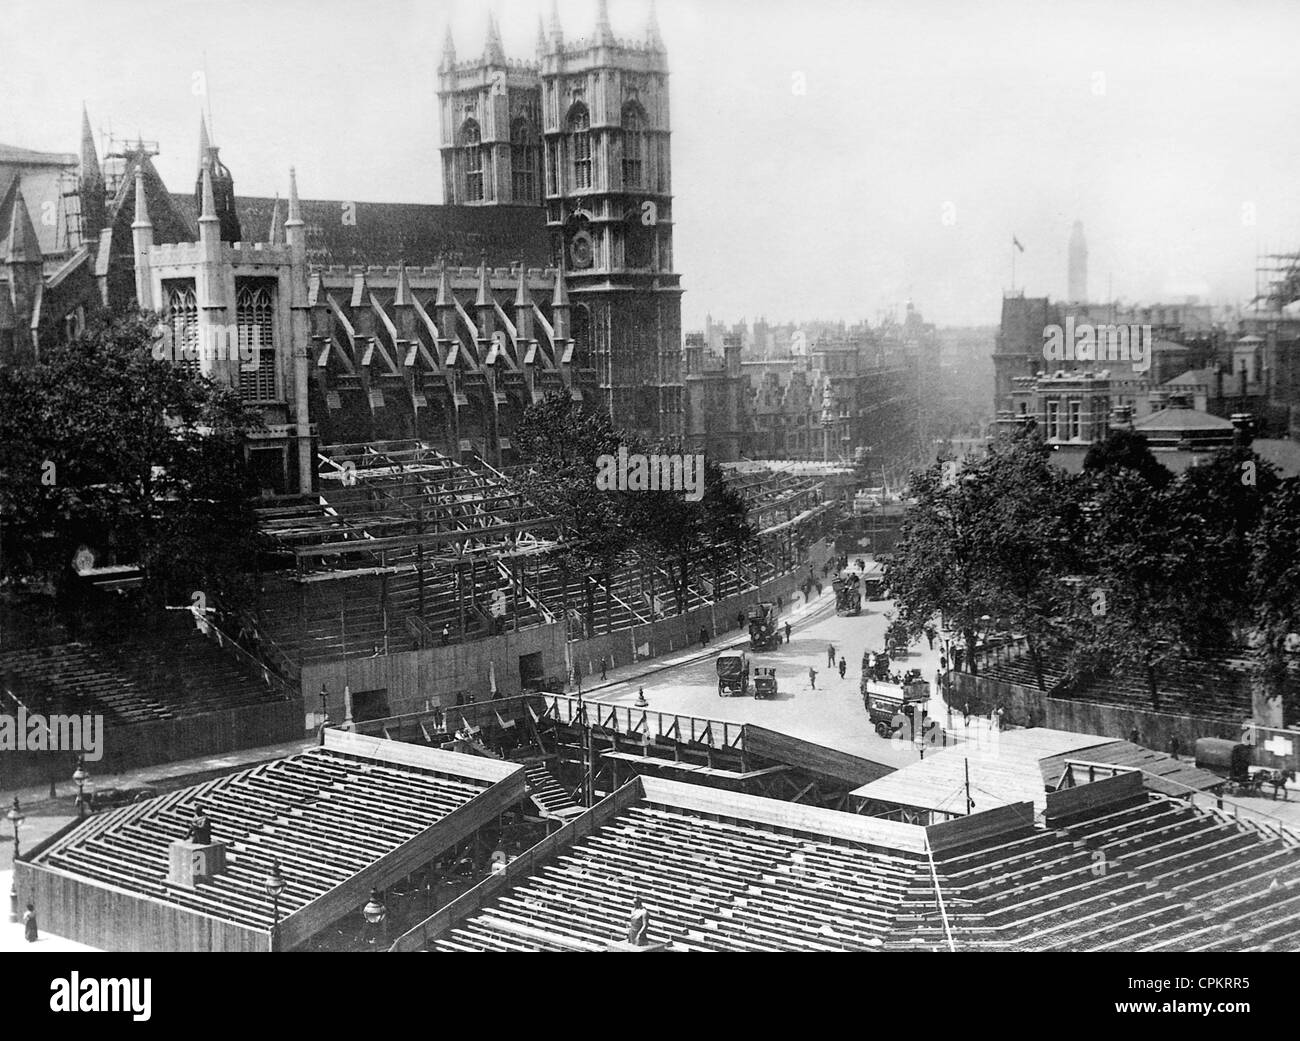 Wood grandstands in front of Westminster Abbey, 1911 - Stock Image